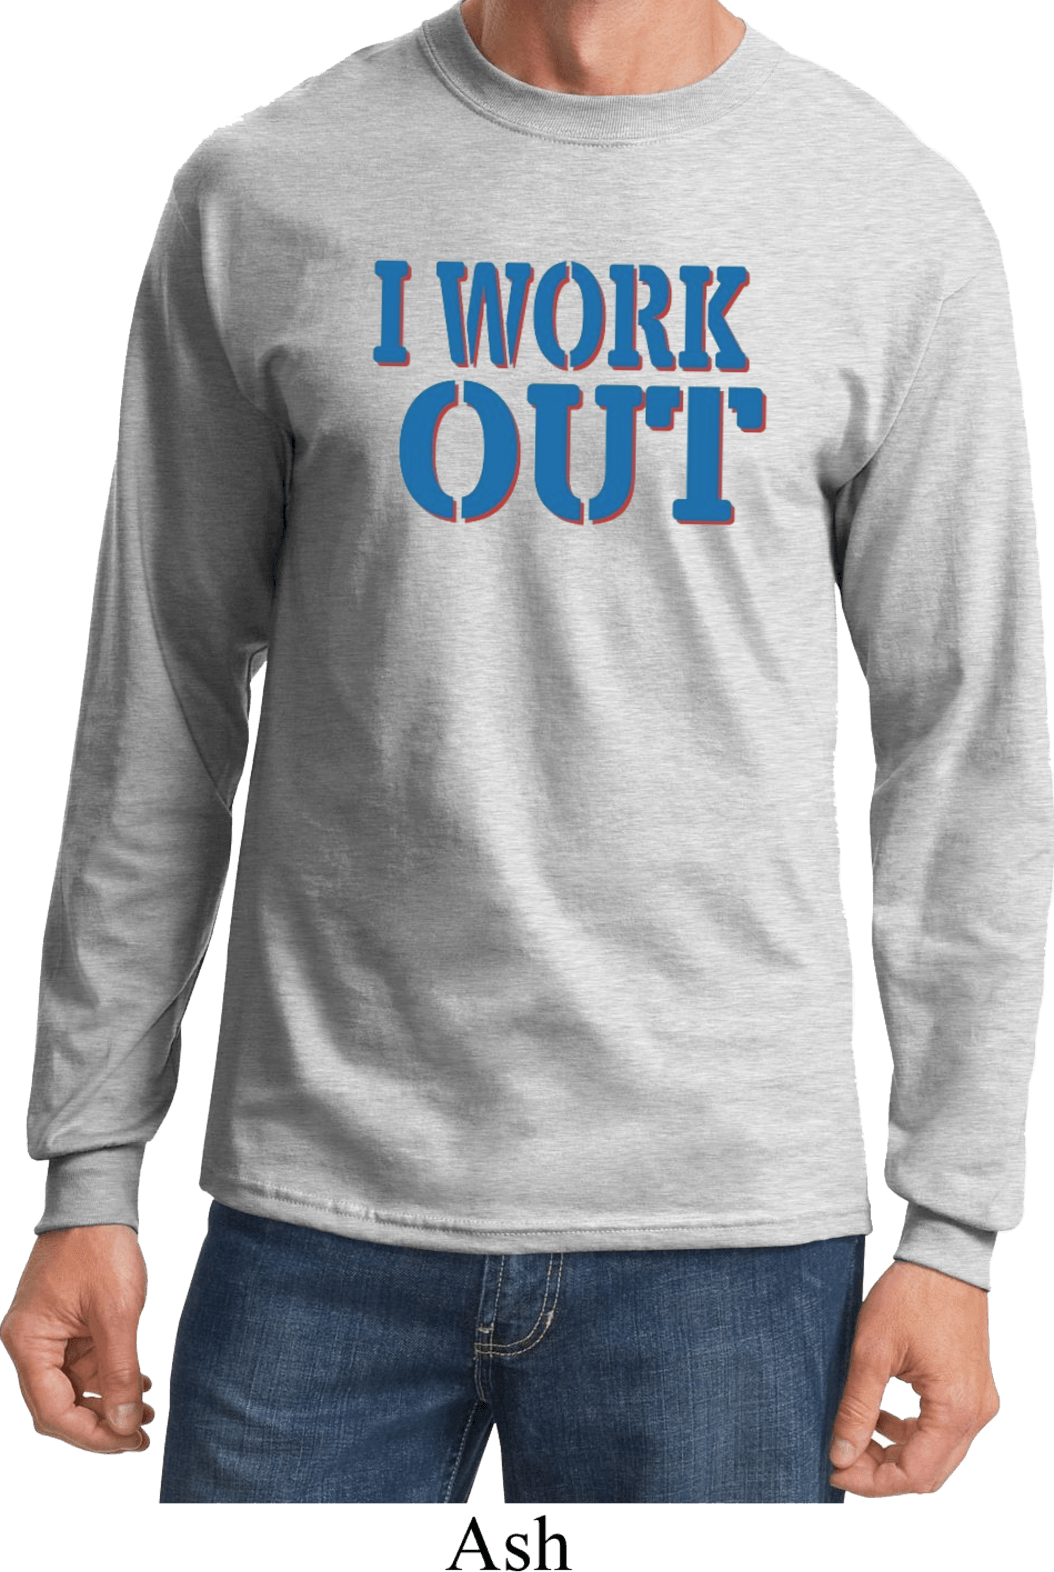 Mens Fitness Shirt I Work Out Long Sleeve Tee T Shirt I